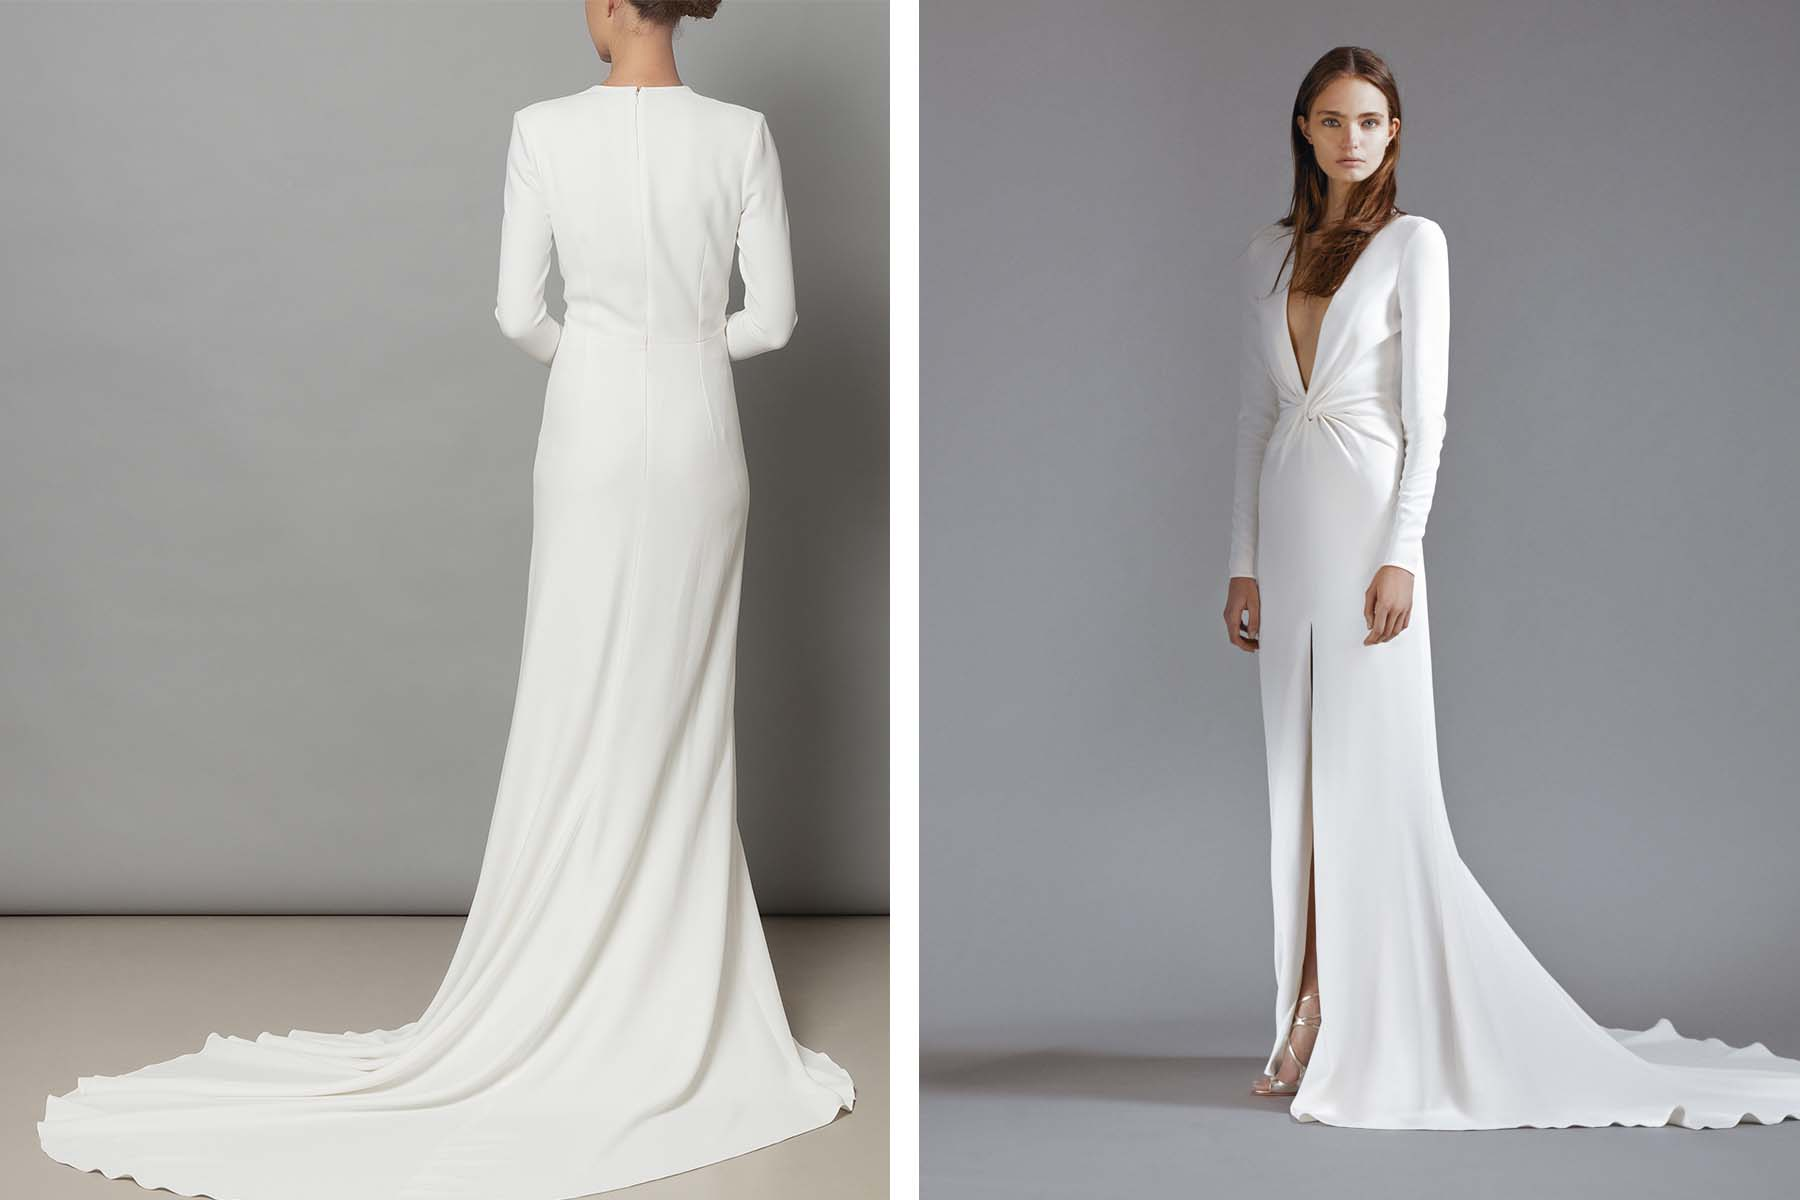 eternal-bridal-bridal-accessories-pairing-for-galia-lahav-prer-a-porter-collection-7